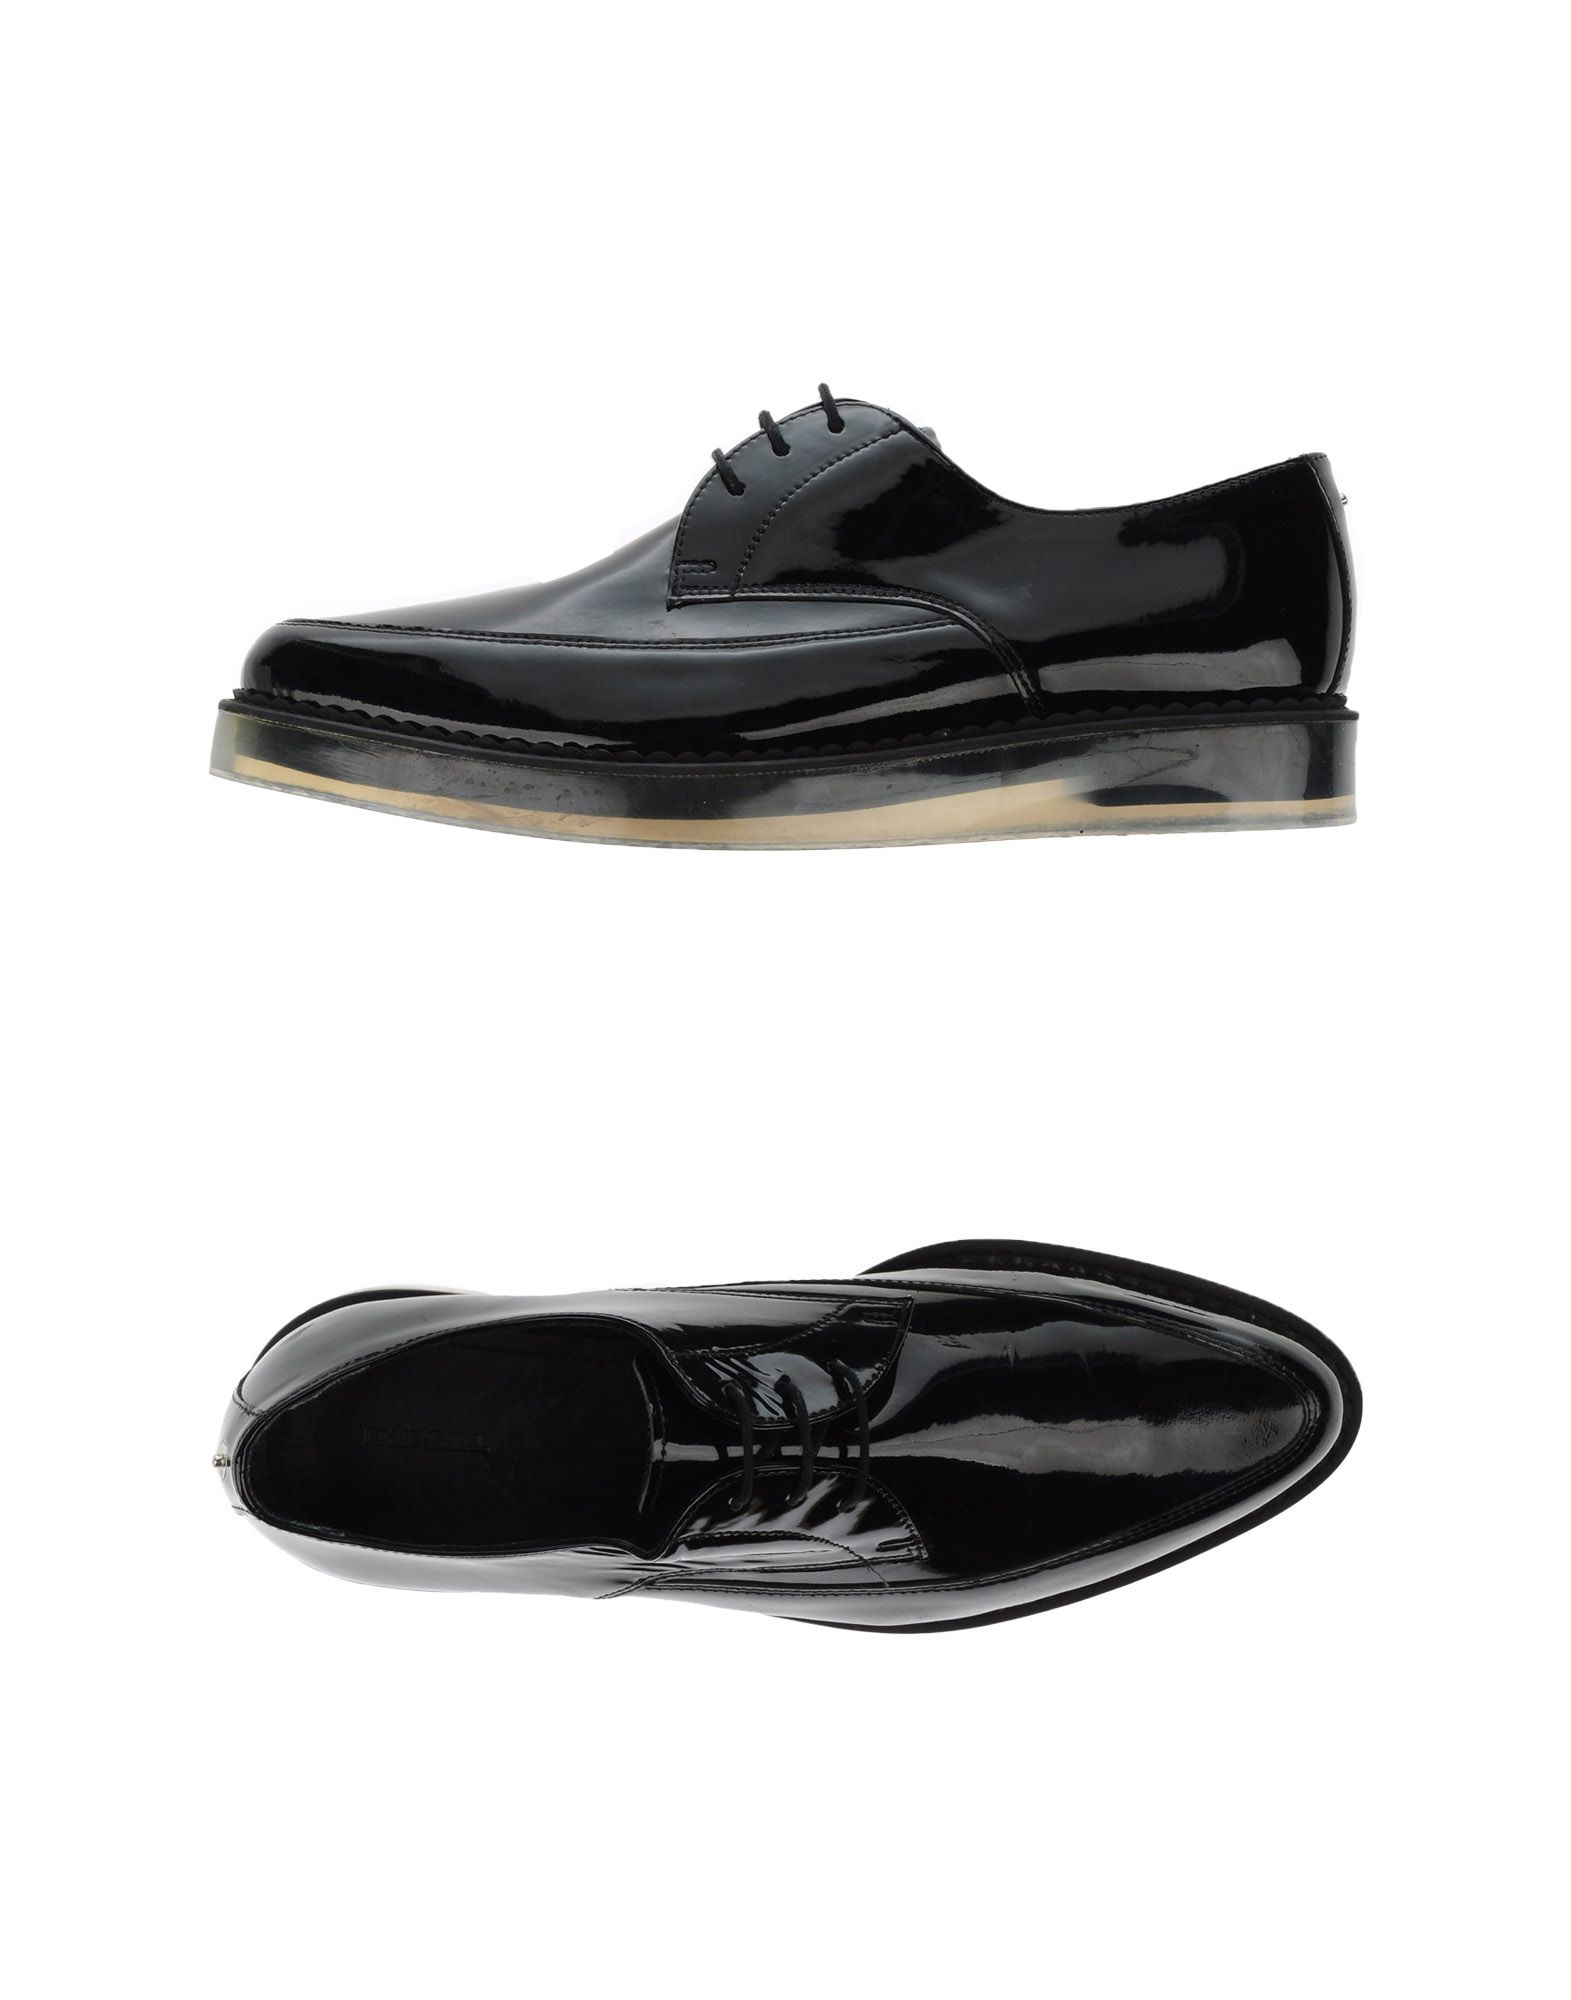 Lyst - Diesel Lace-up Shoes in Black for Men